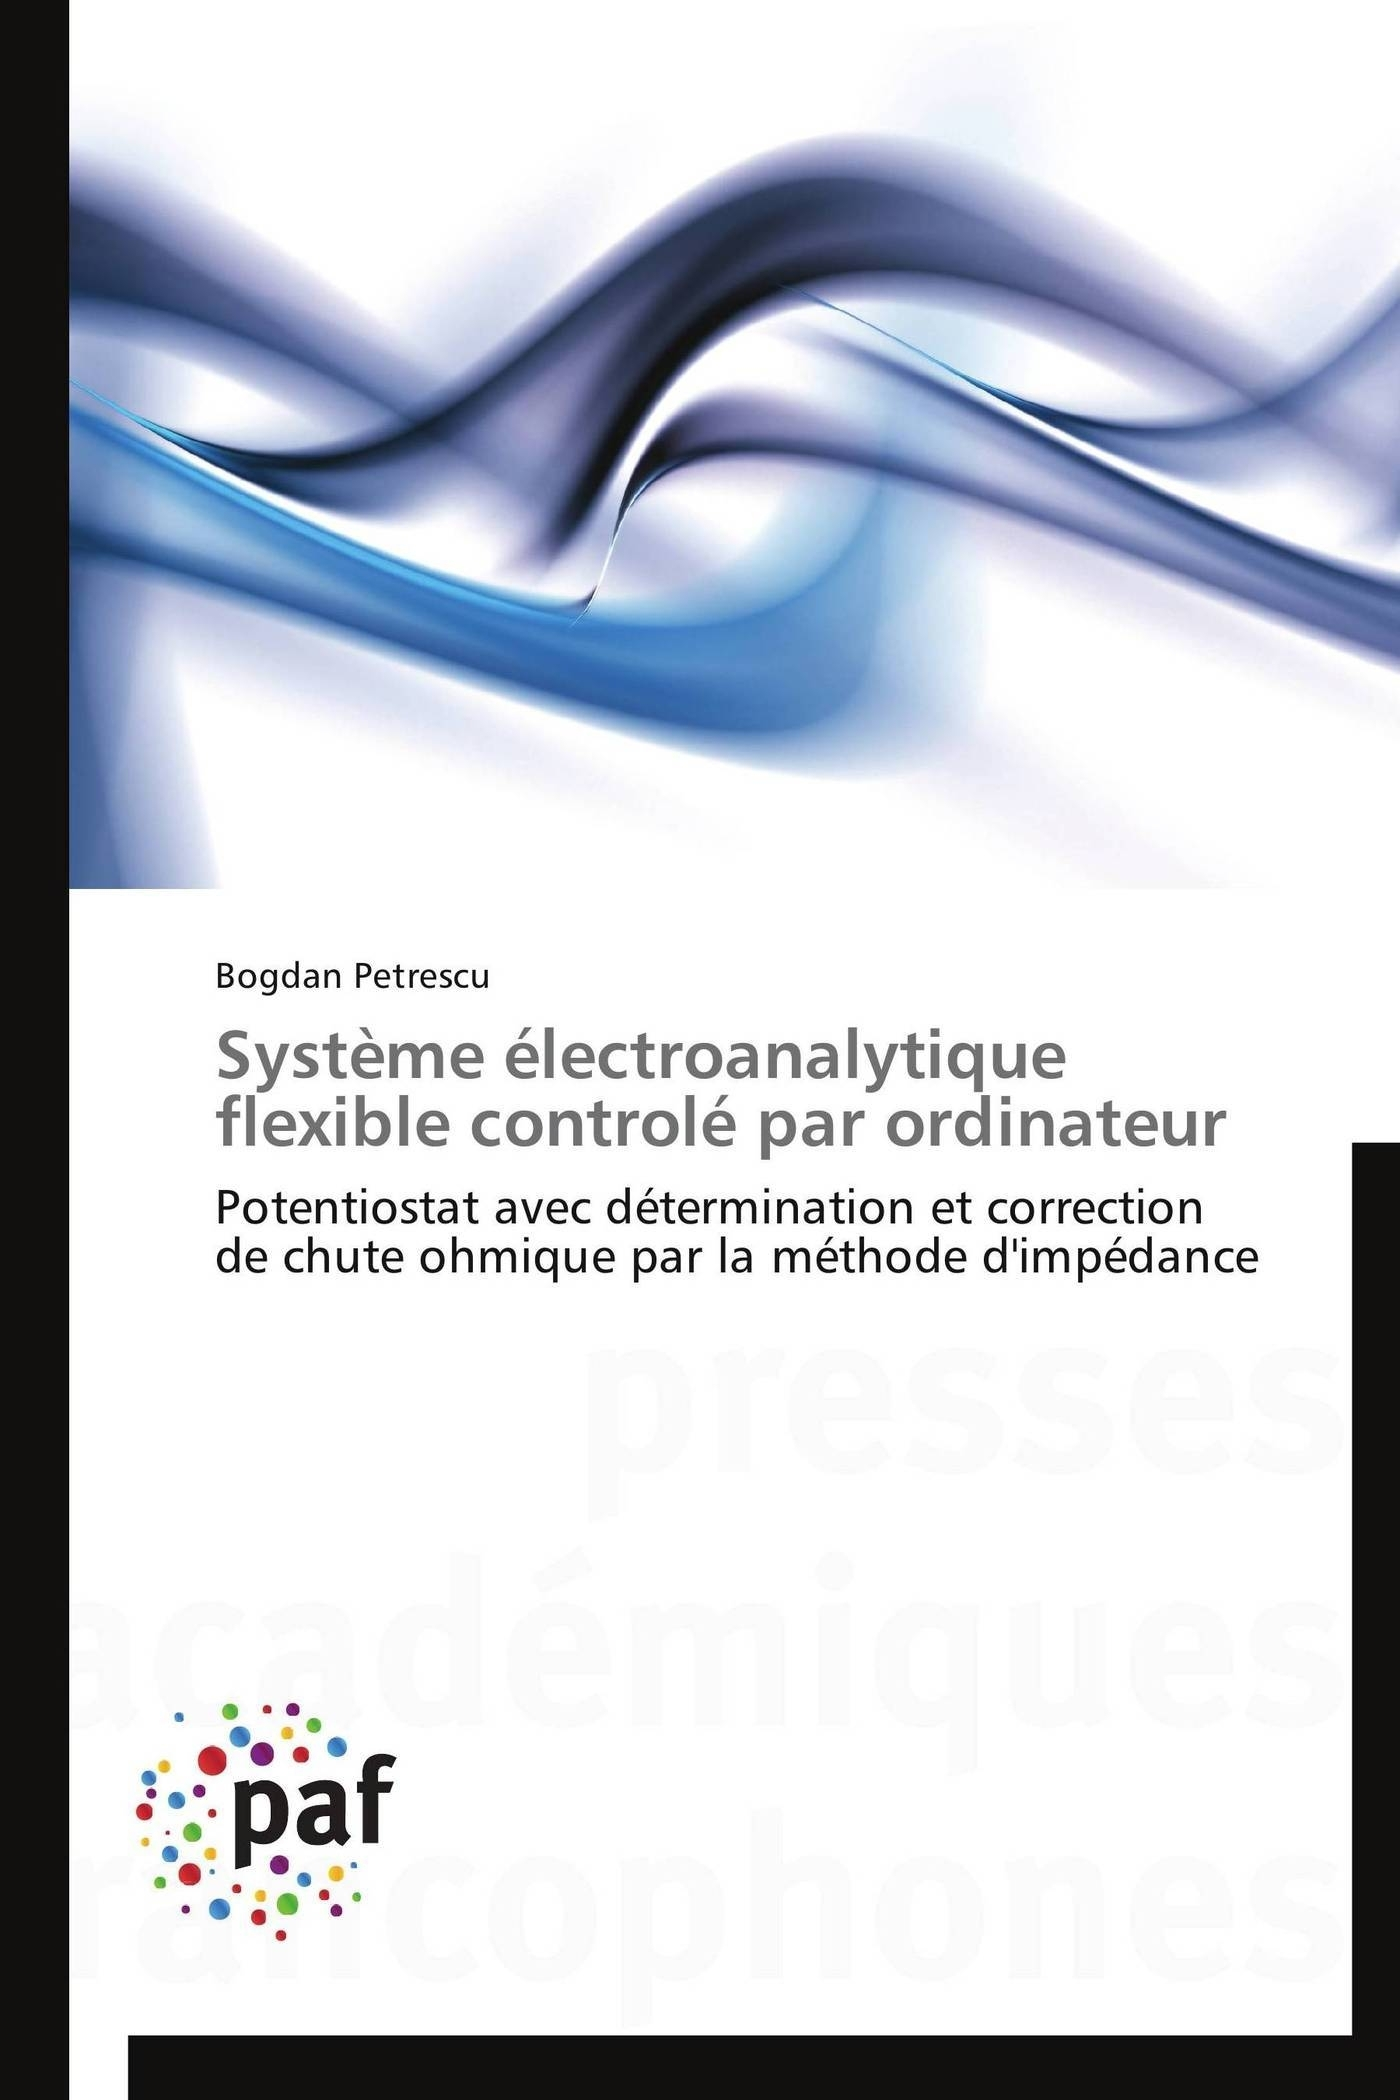 SYSTEME ELECTROANALYTIQUE FLEXIBLE CONTROLE PAR ORDINATEUR